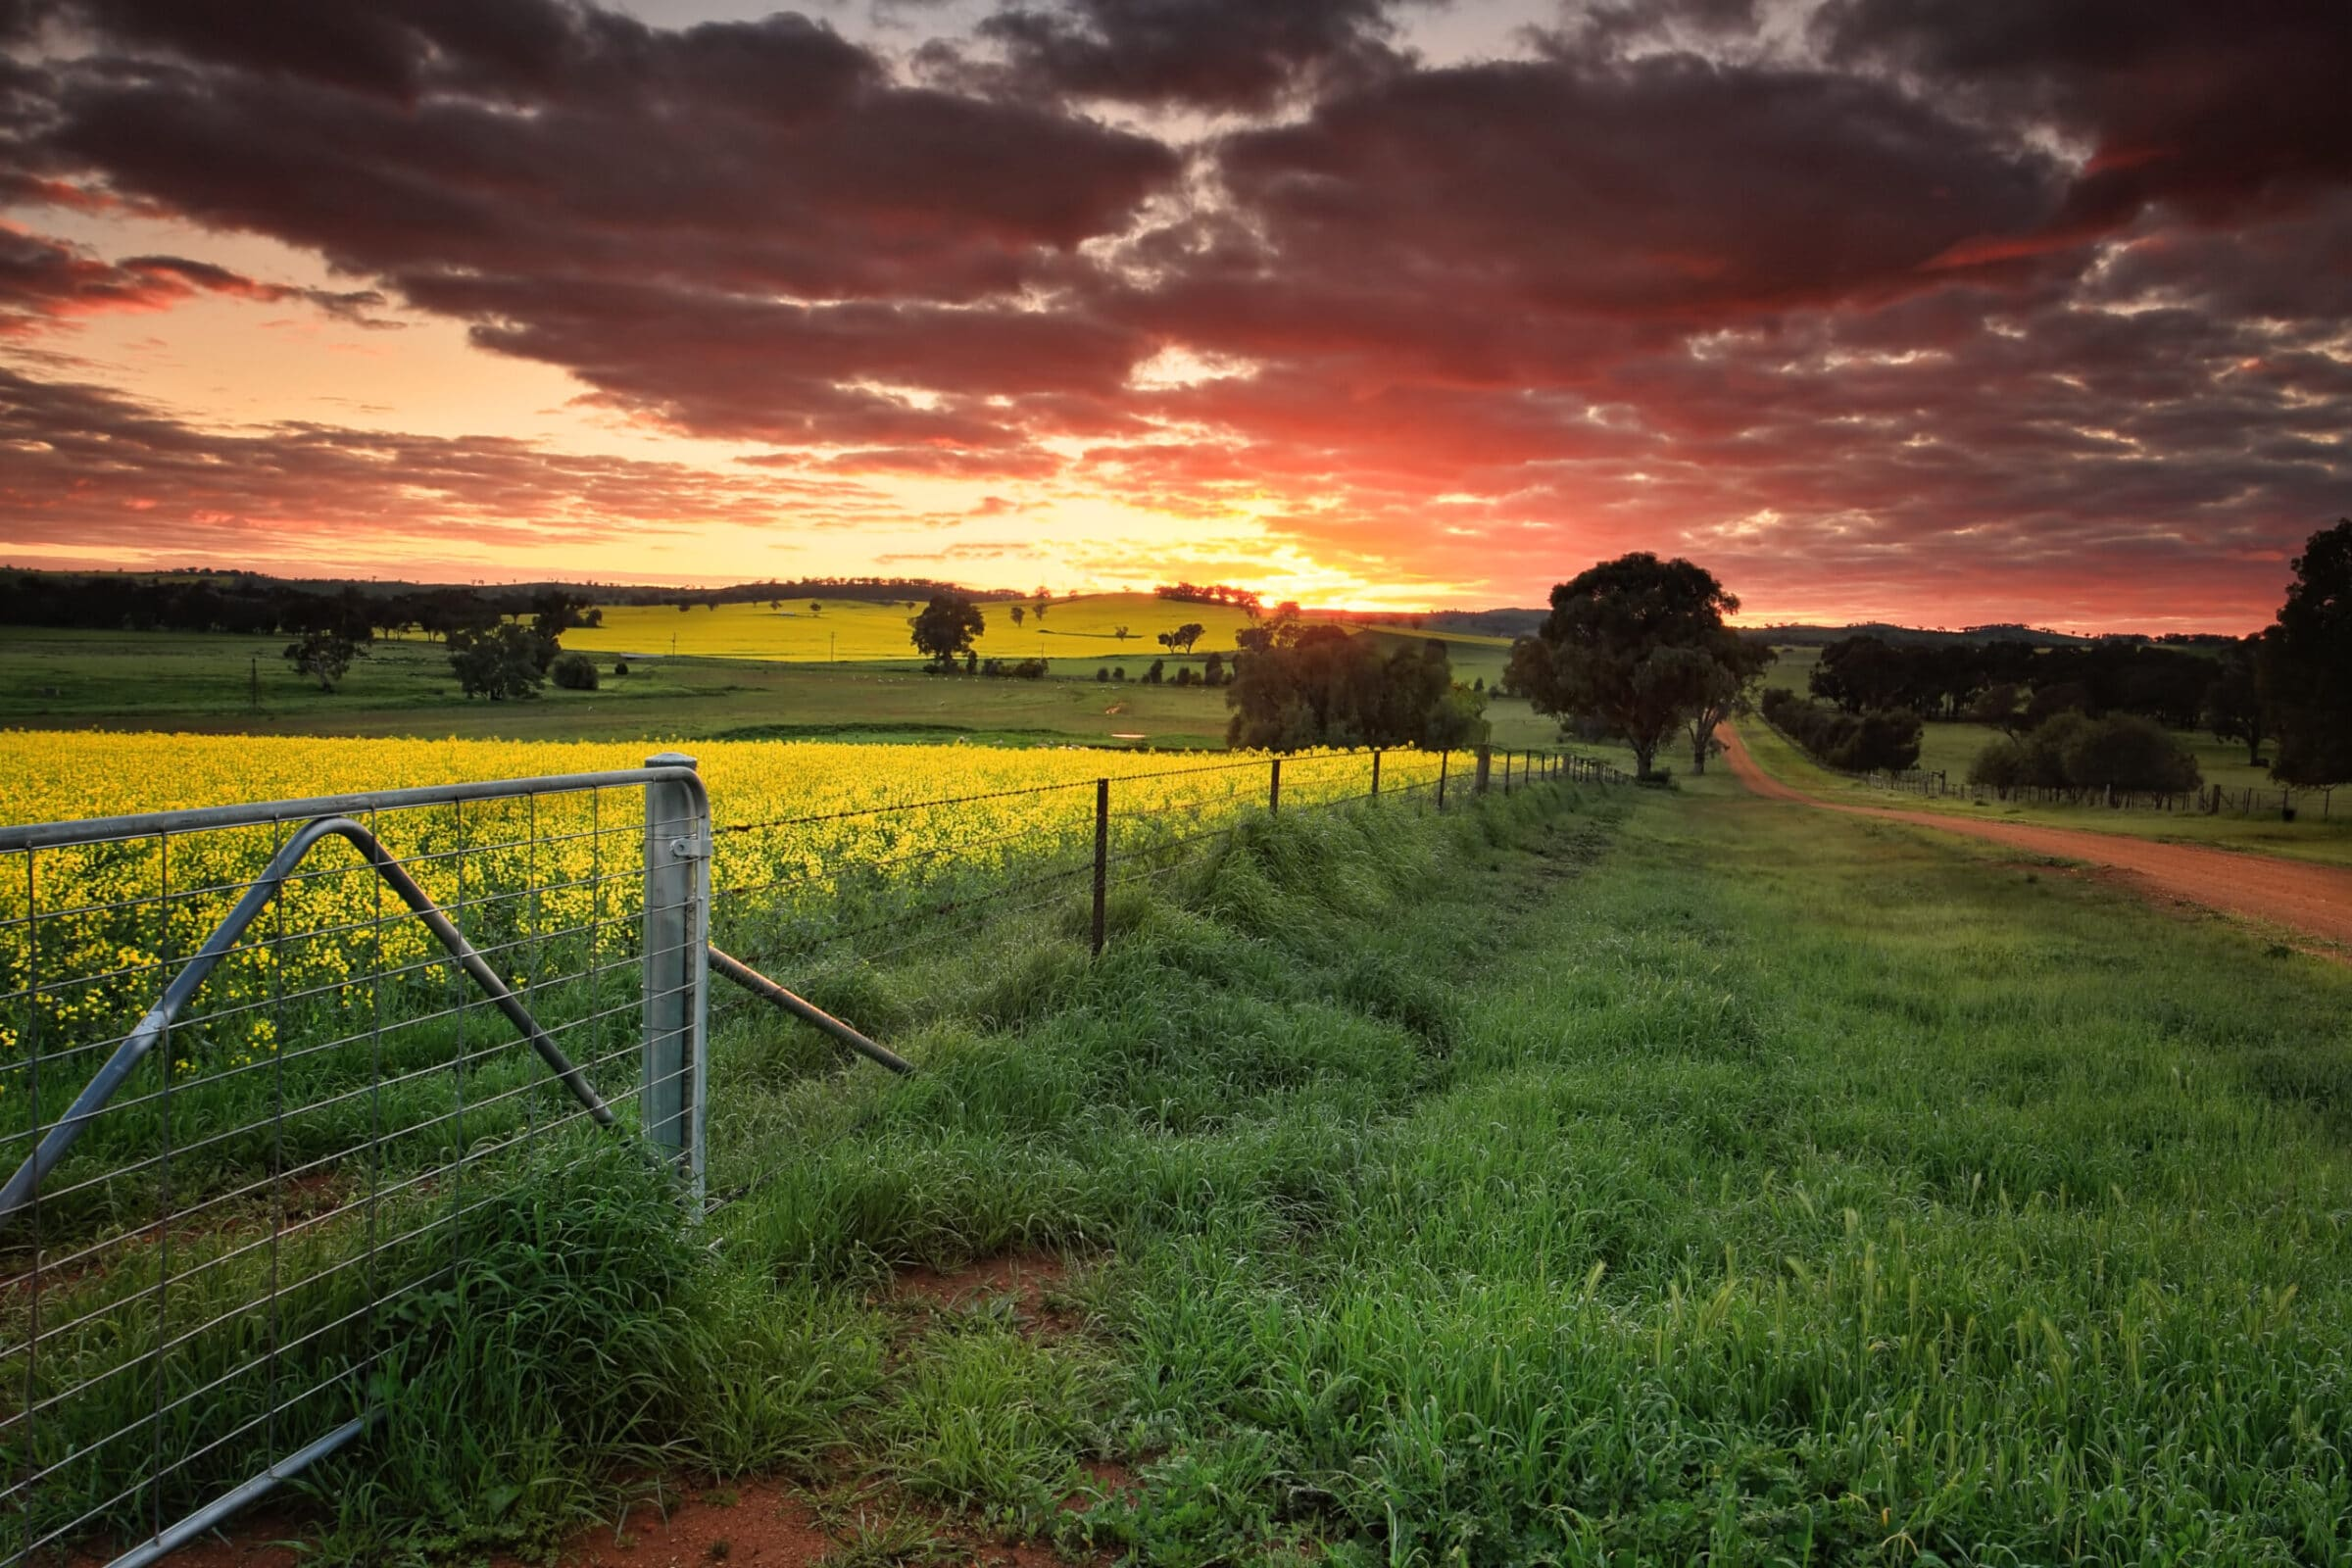 Sunrise on the farm in country NSW Red skies